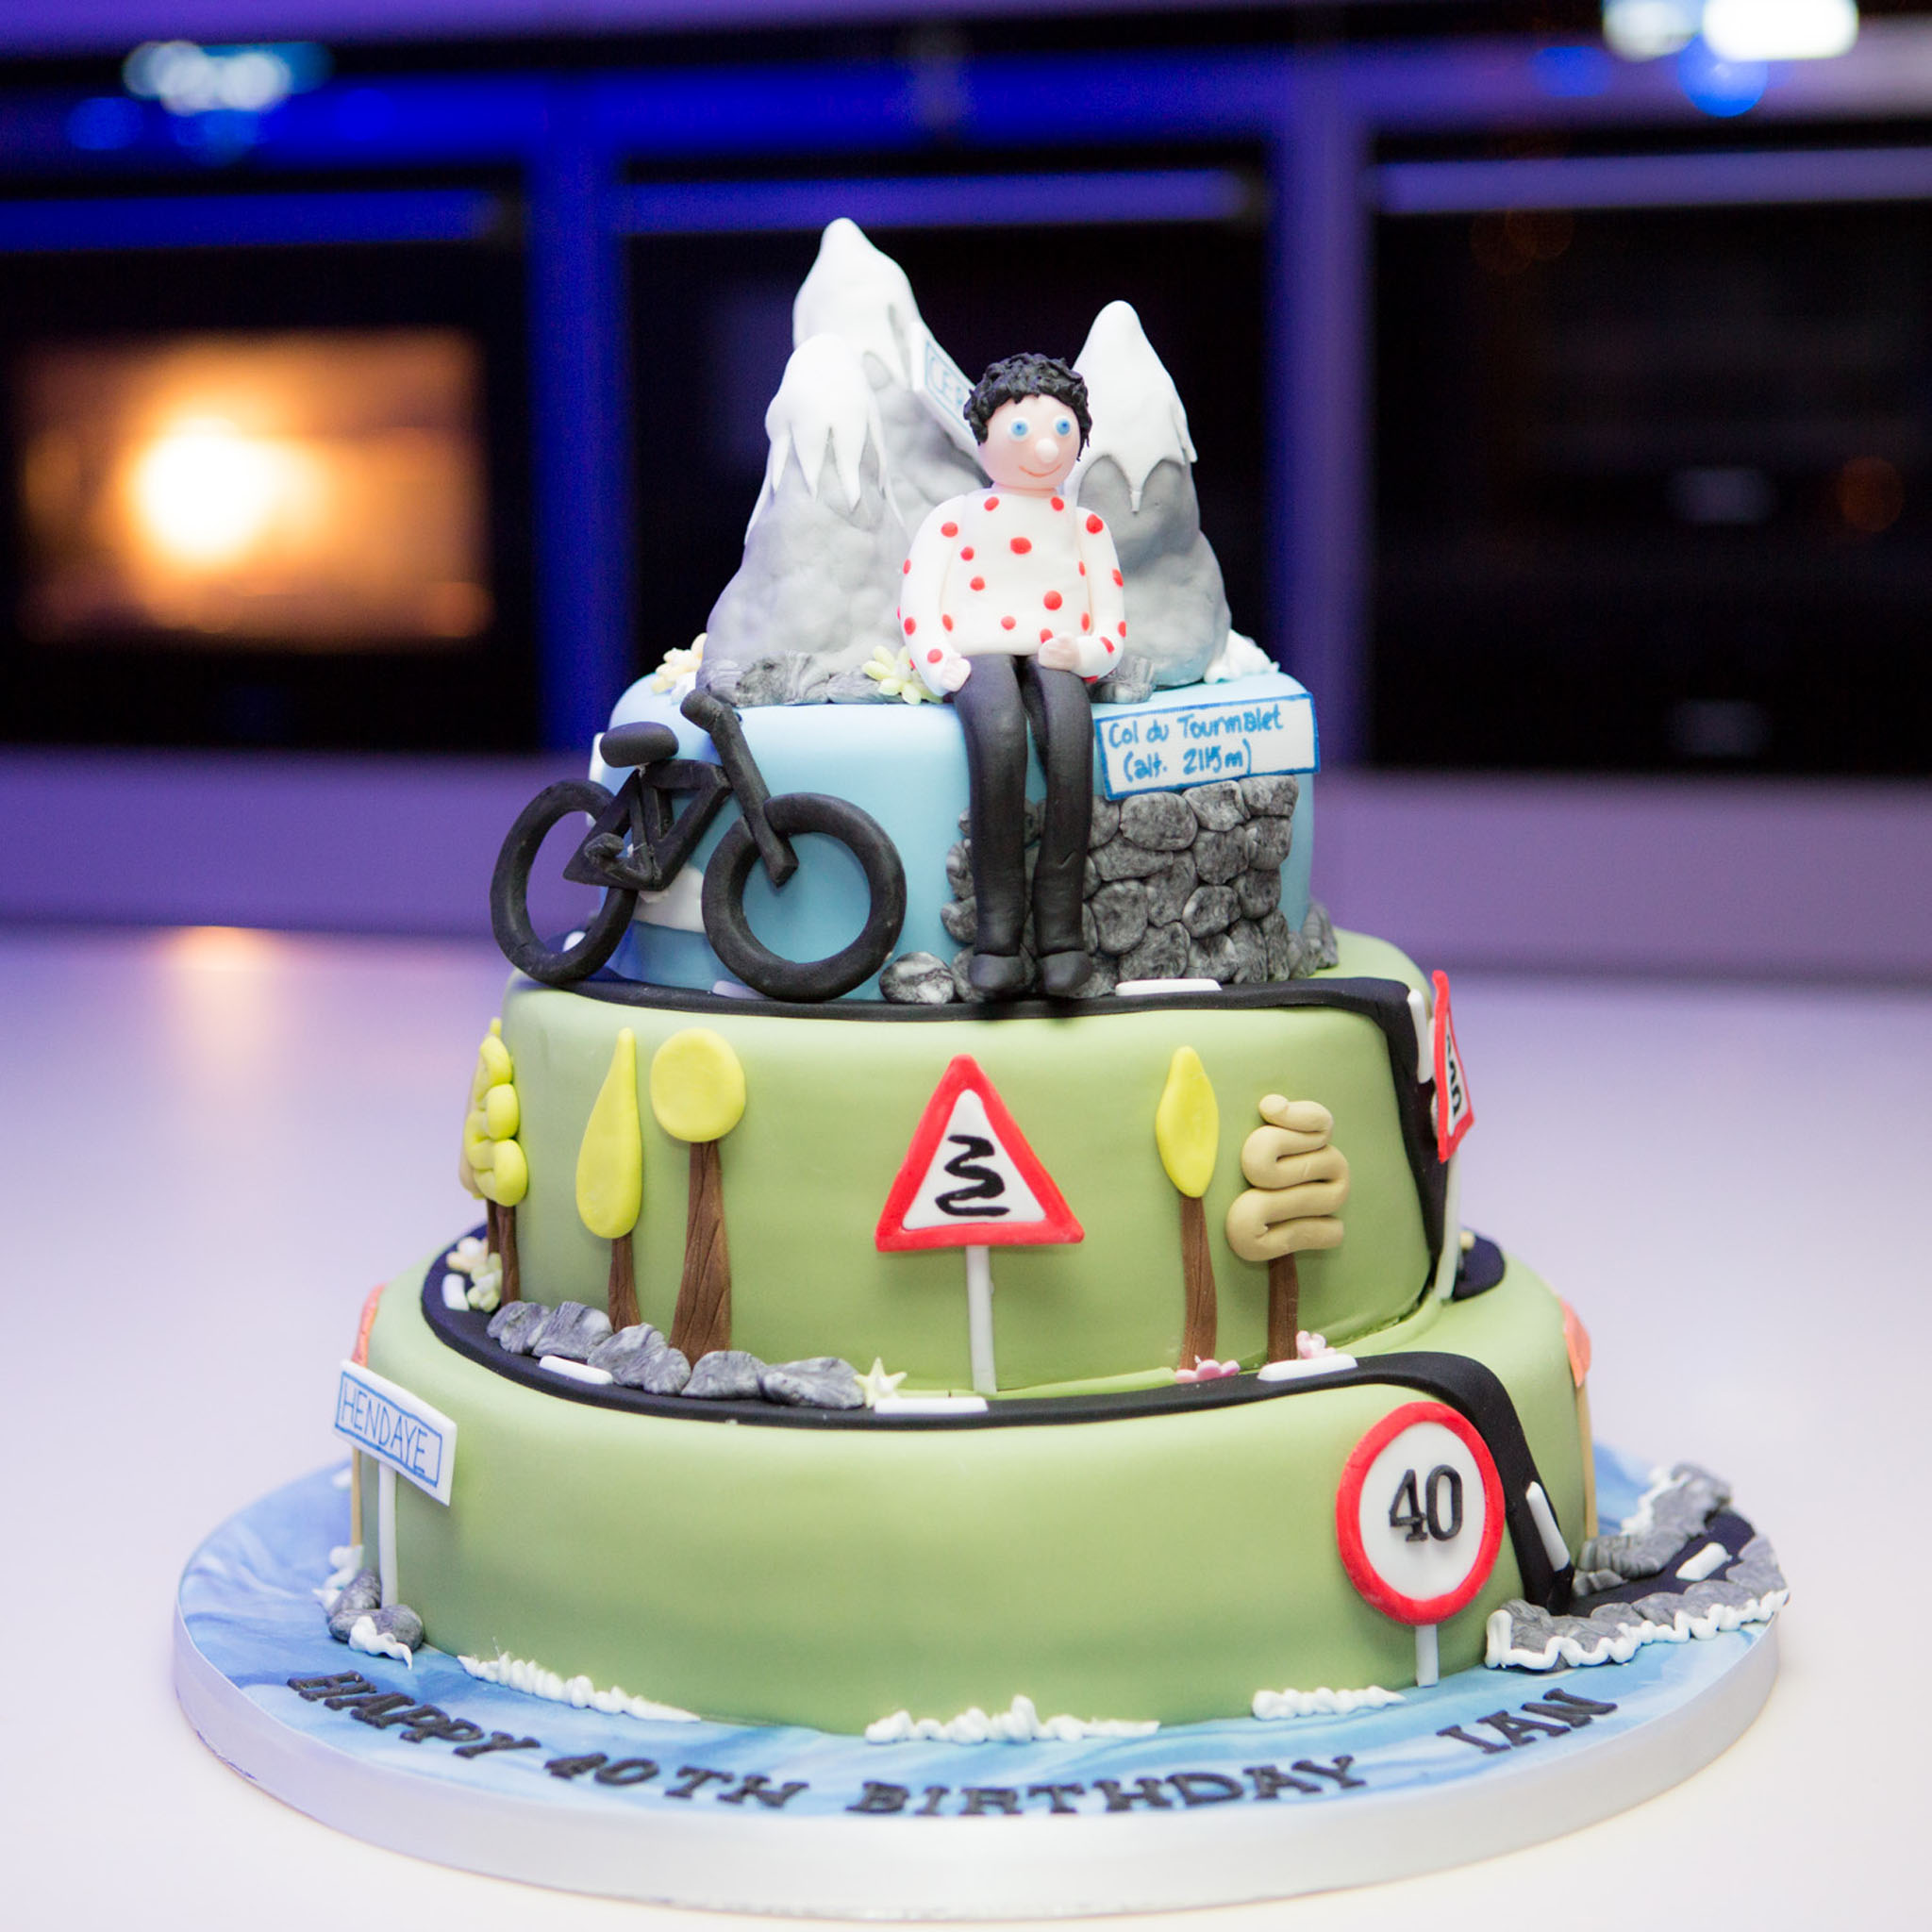 Photography of a 40th birthday cake